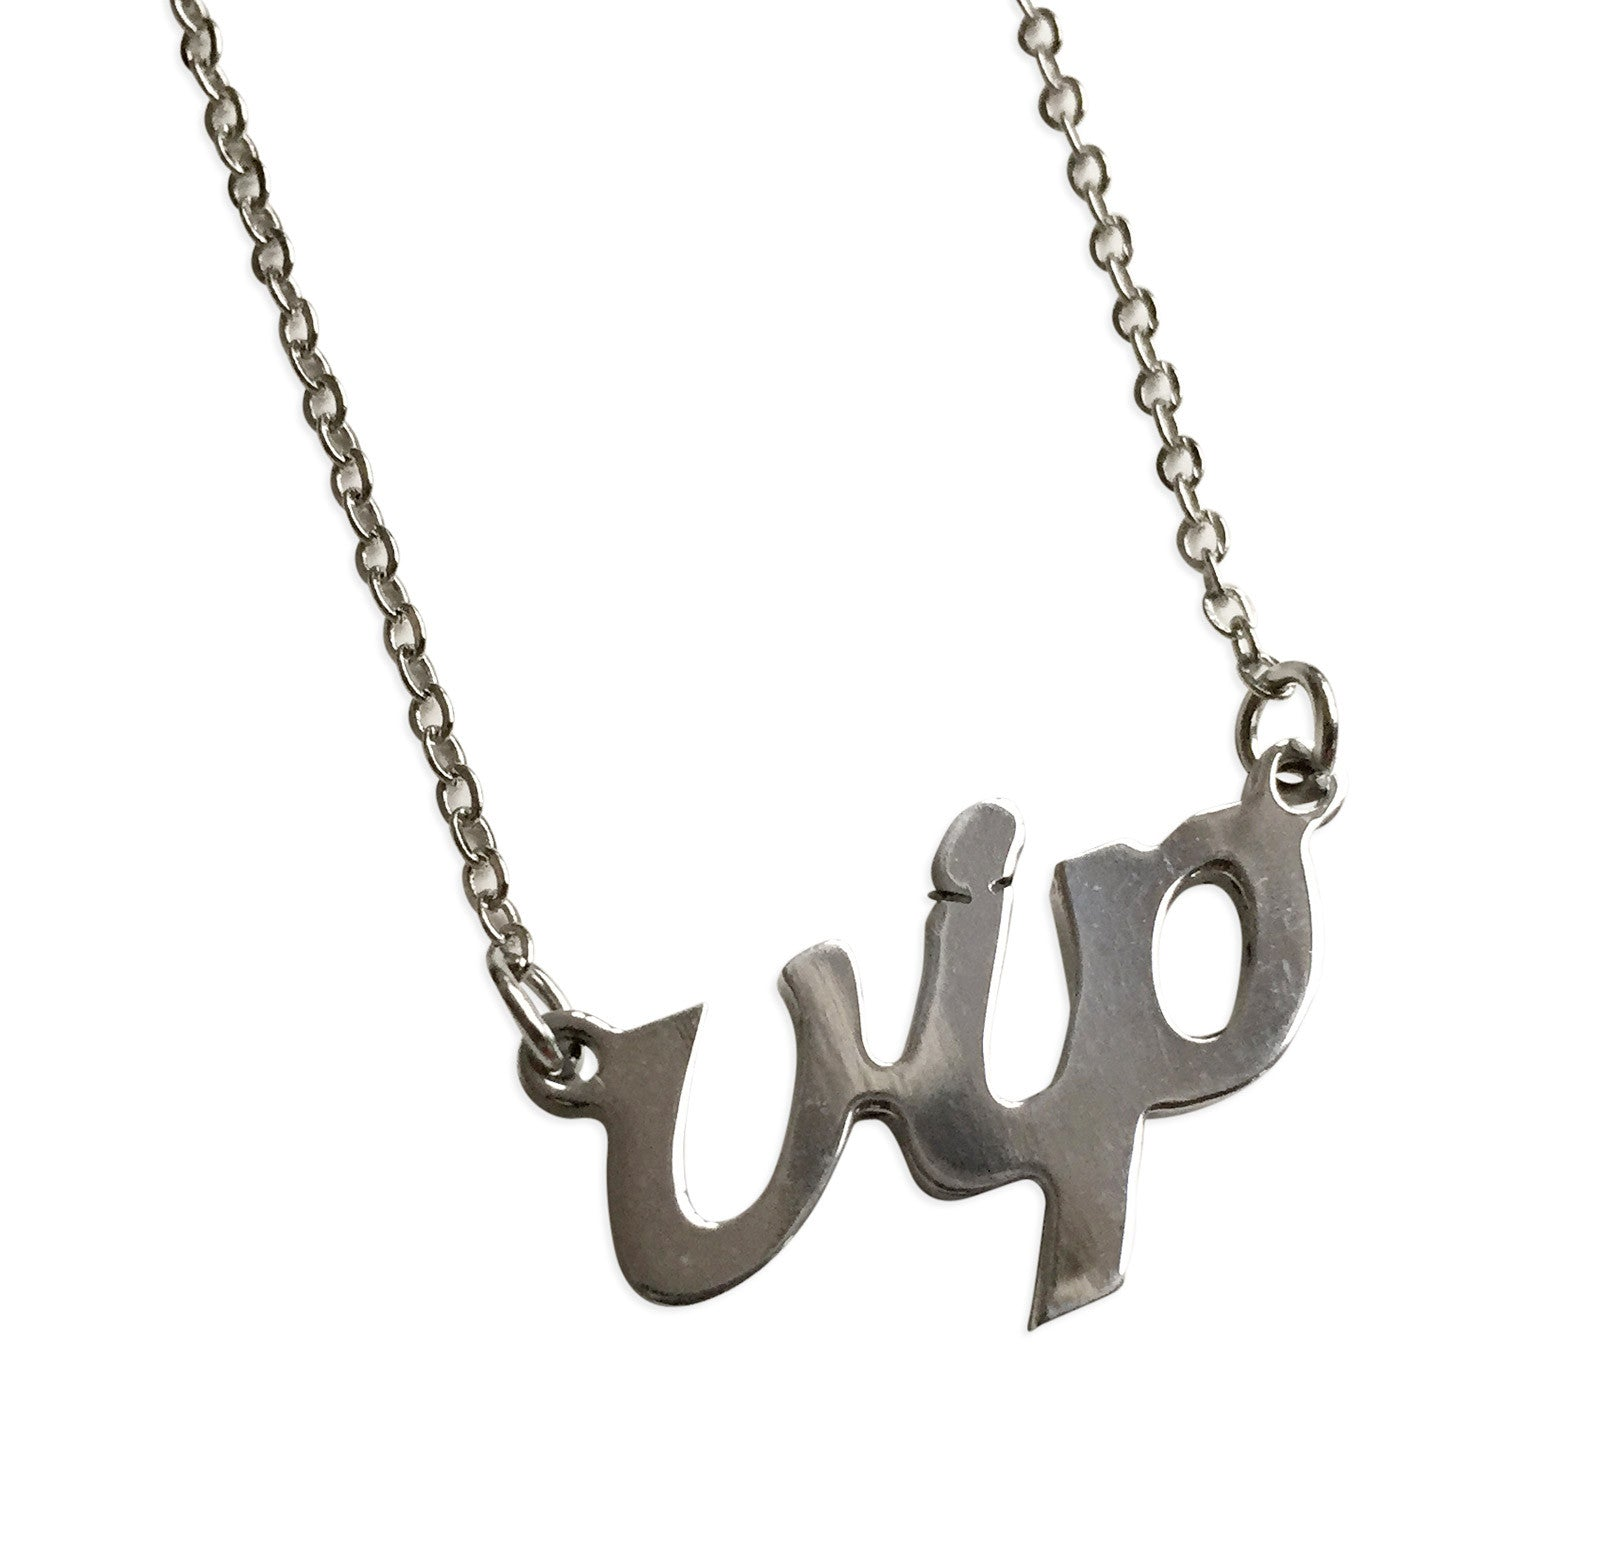 goods script done genre silver pendant nameplate well products music necklace web vip